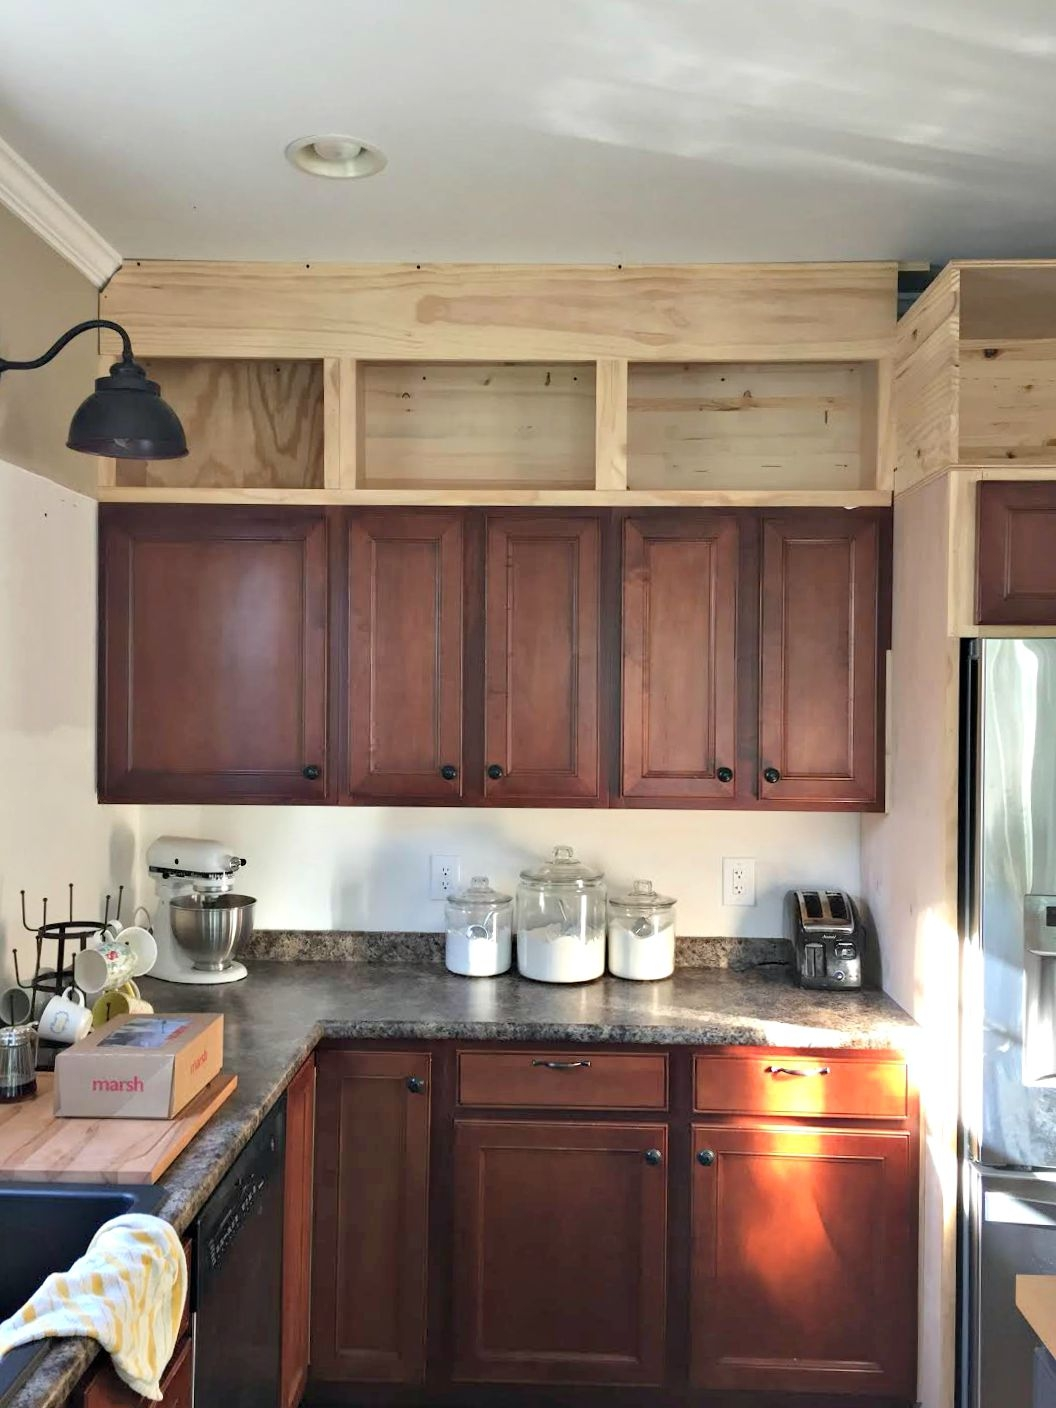 Permalink to Add Height To Existing Kitchen Cabinets